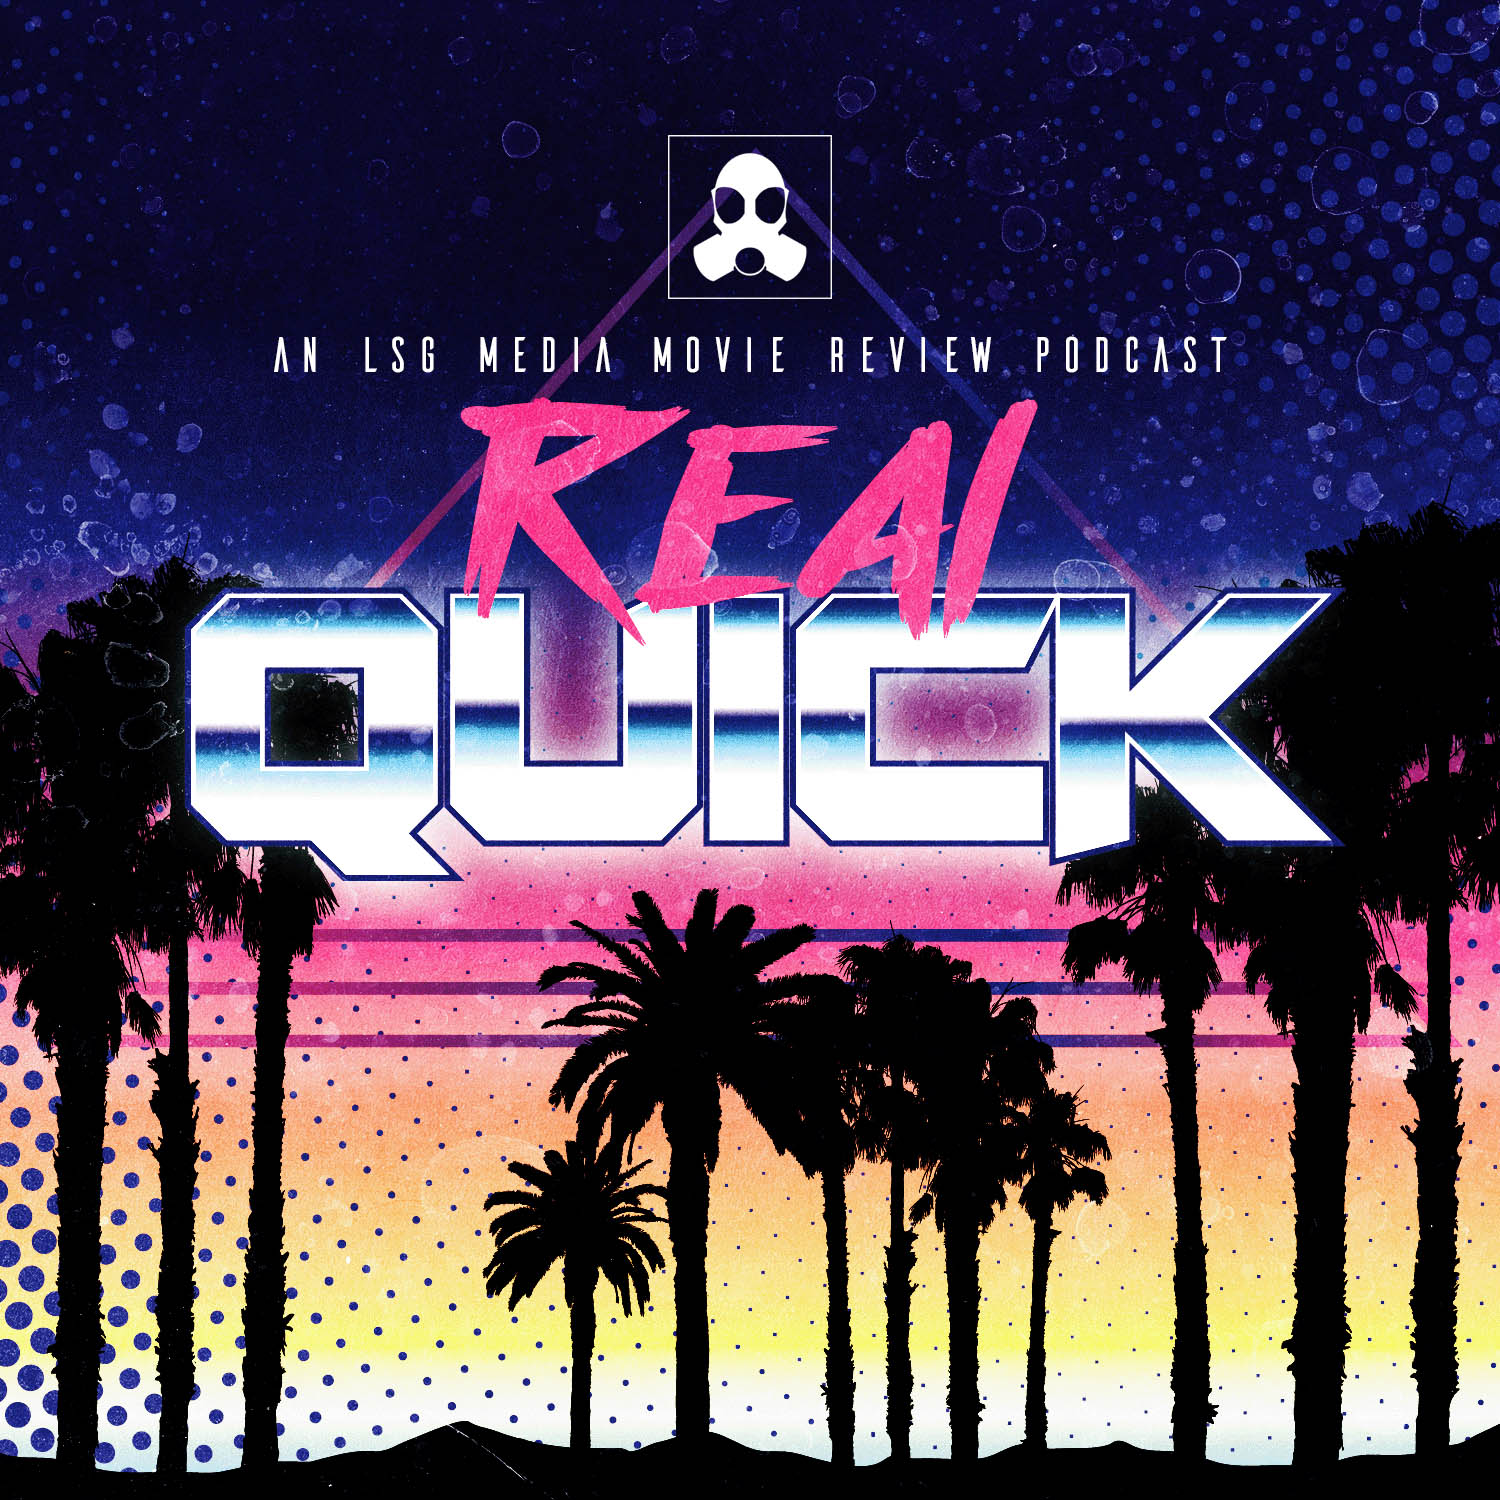 Artwork for podcast Real Quick? A Film Podcast